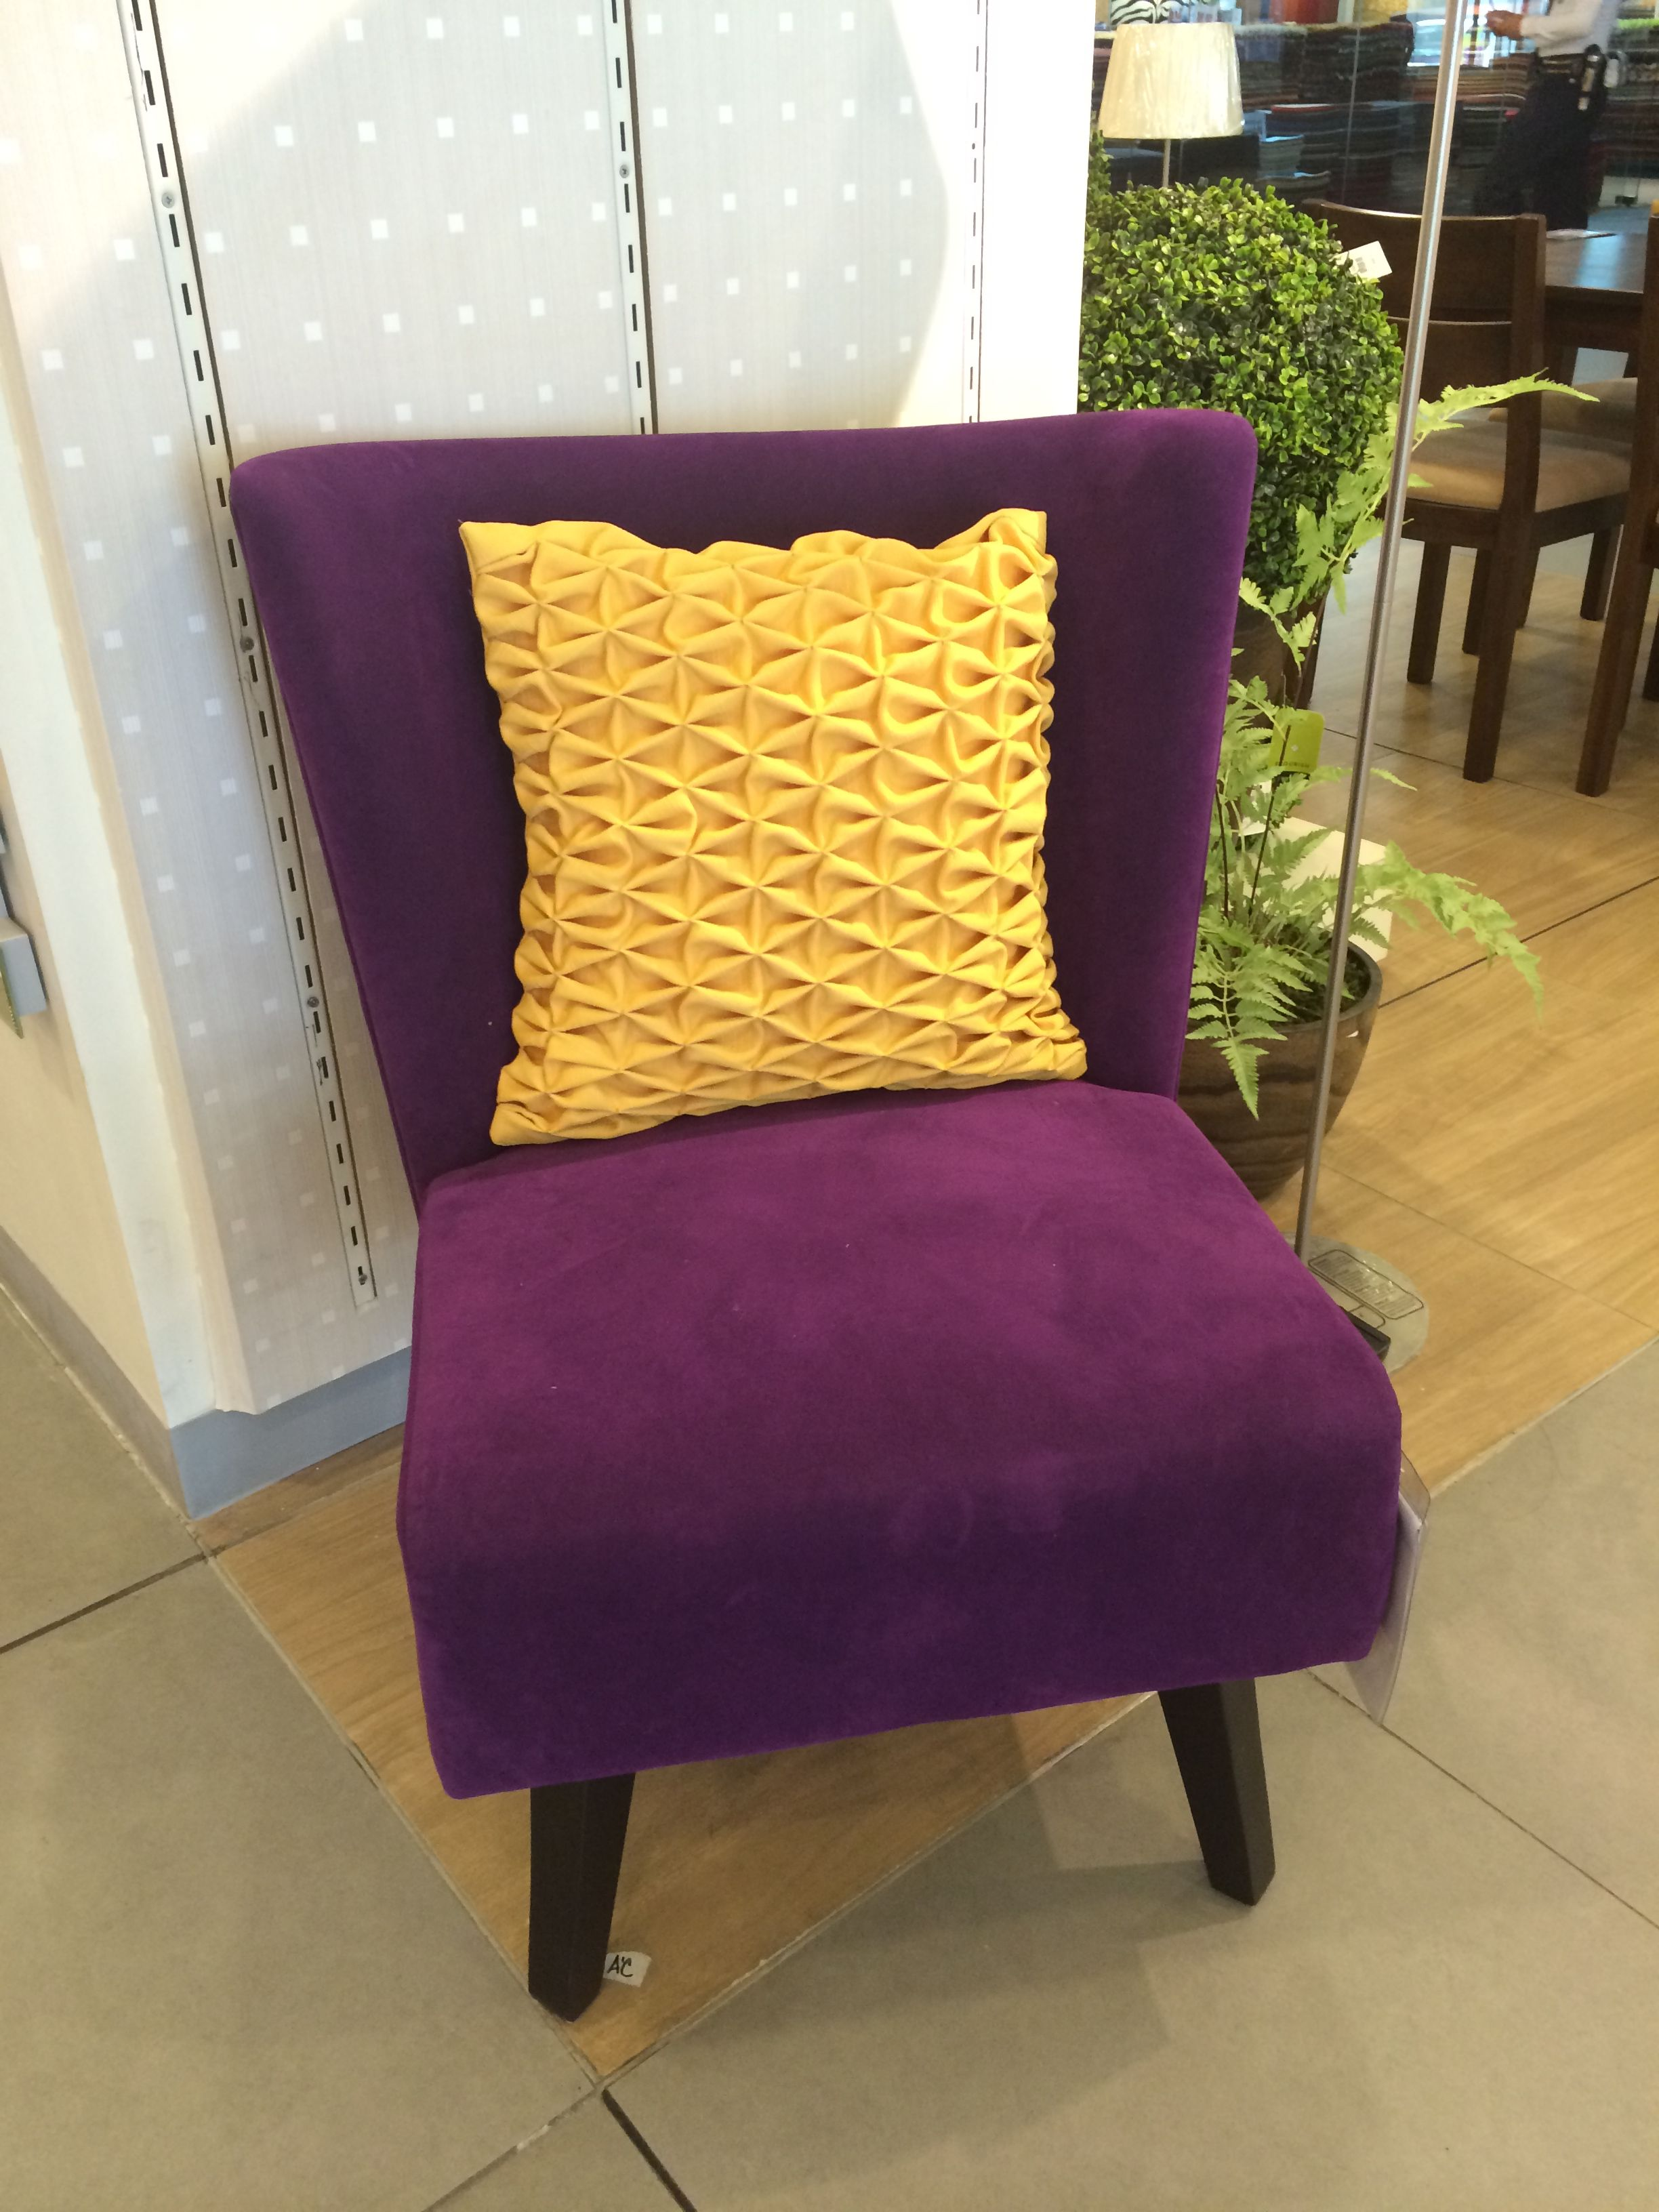 fy chair from Our Home Check them out at the Interior Zone of